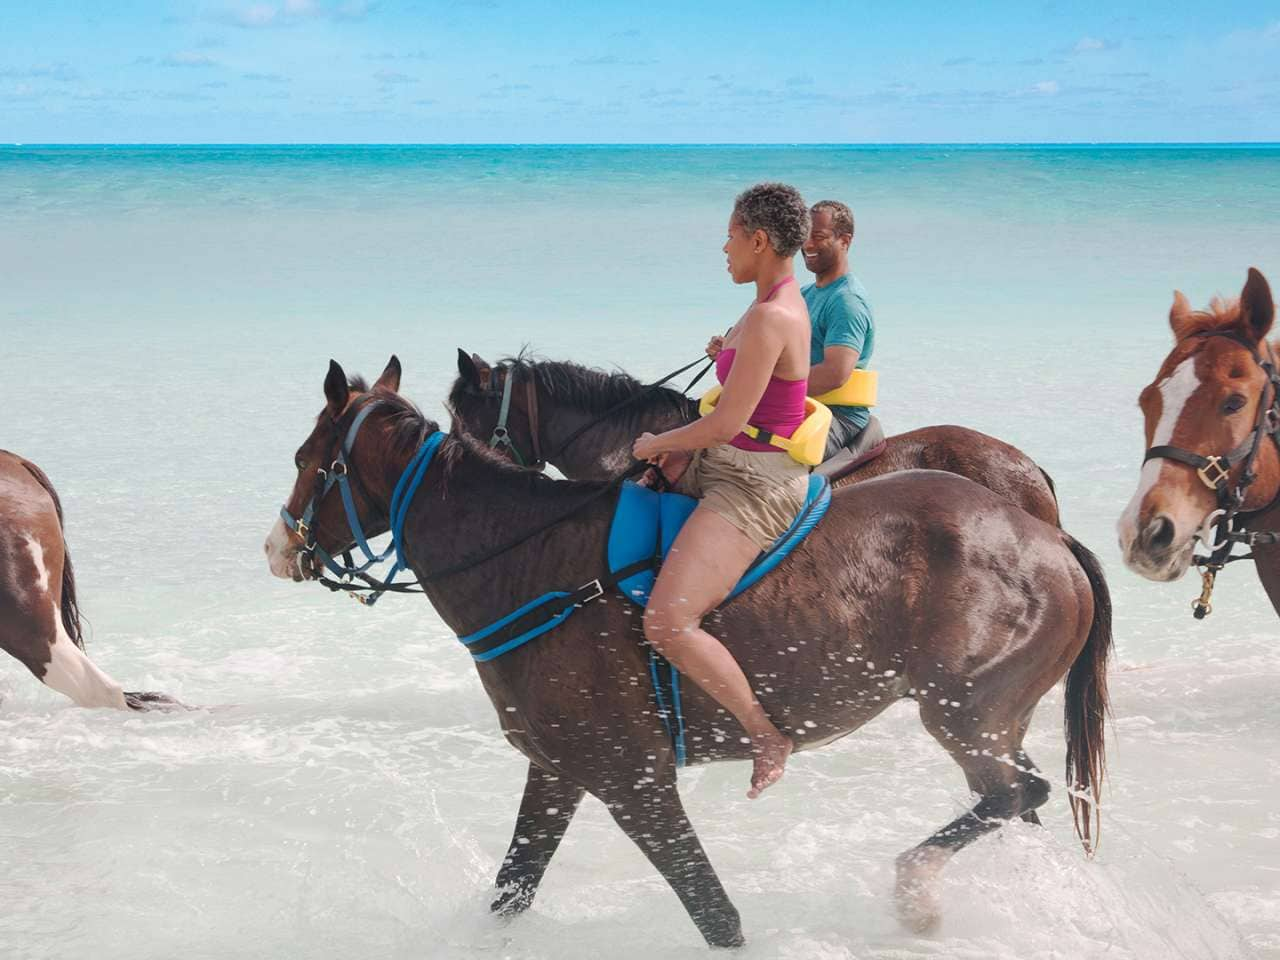 People horseback riding in the surf on Half Moon Cay, Holland America's award-winning private island